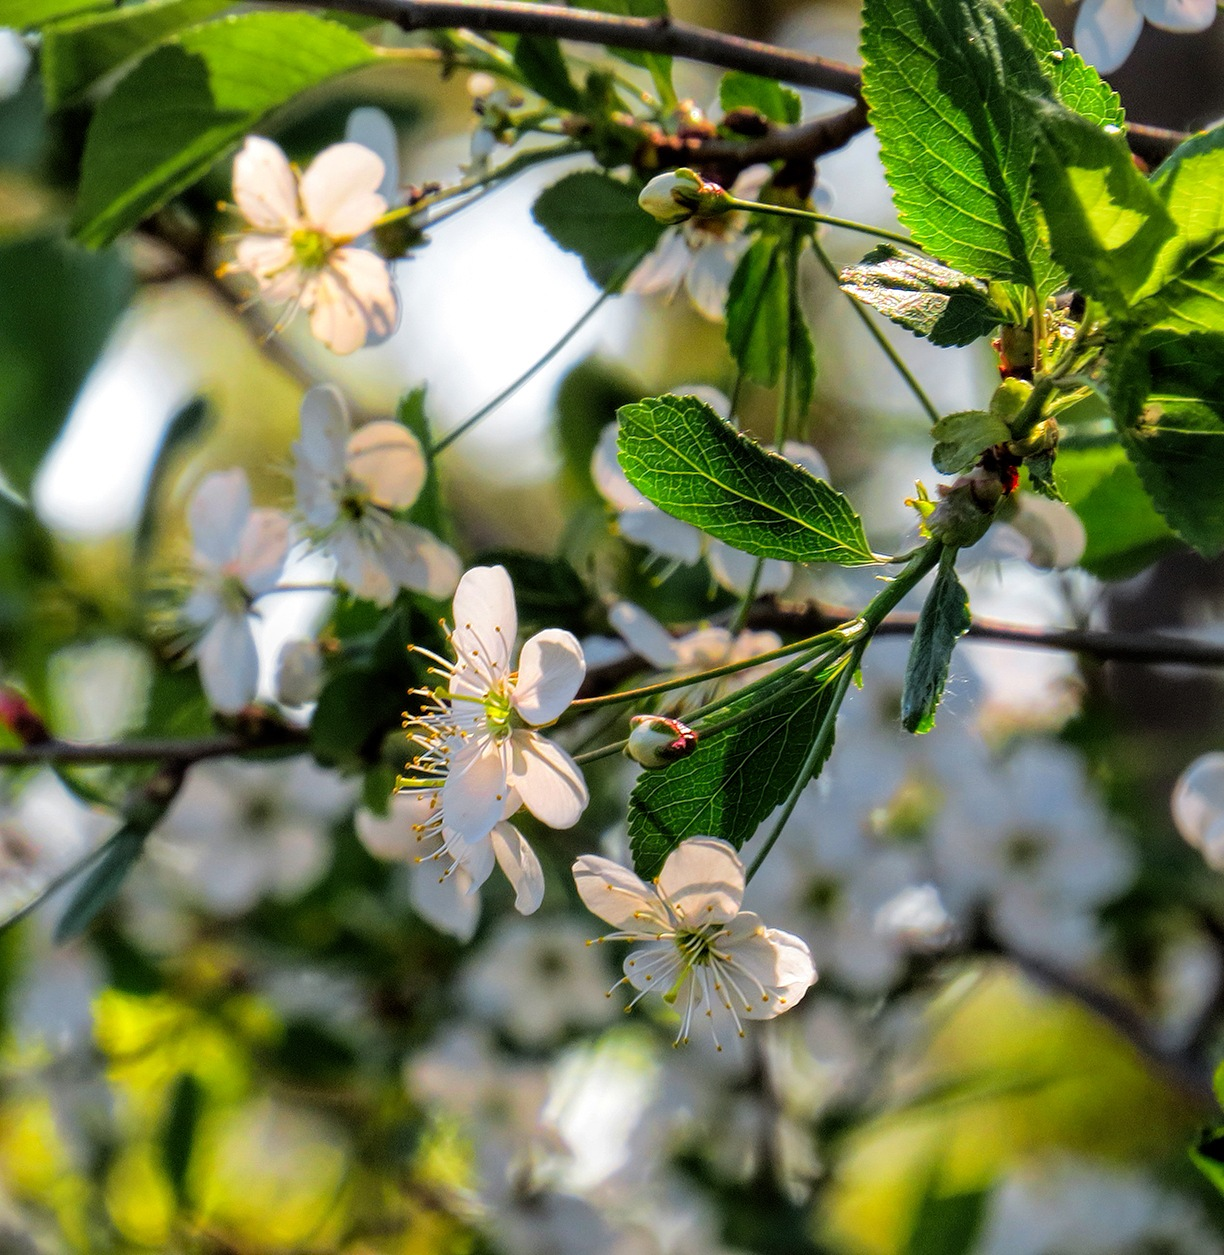 Bird-cherry Tree by susanne.m.andersson.92